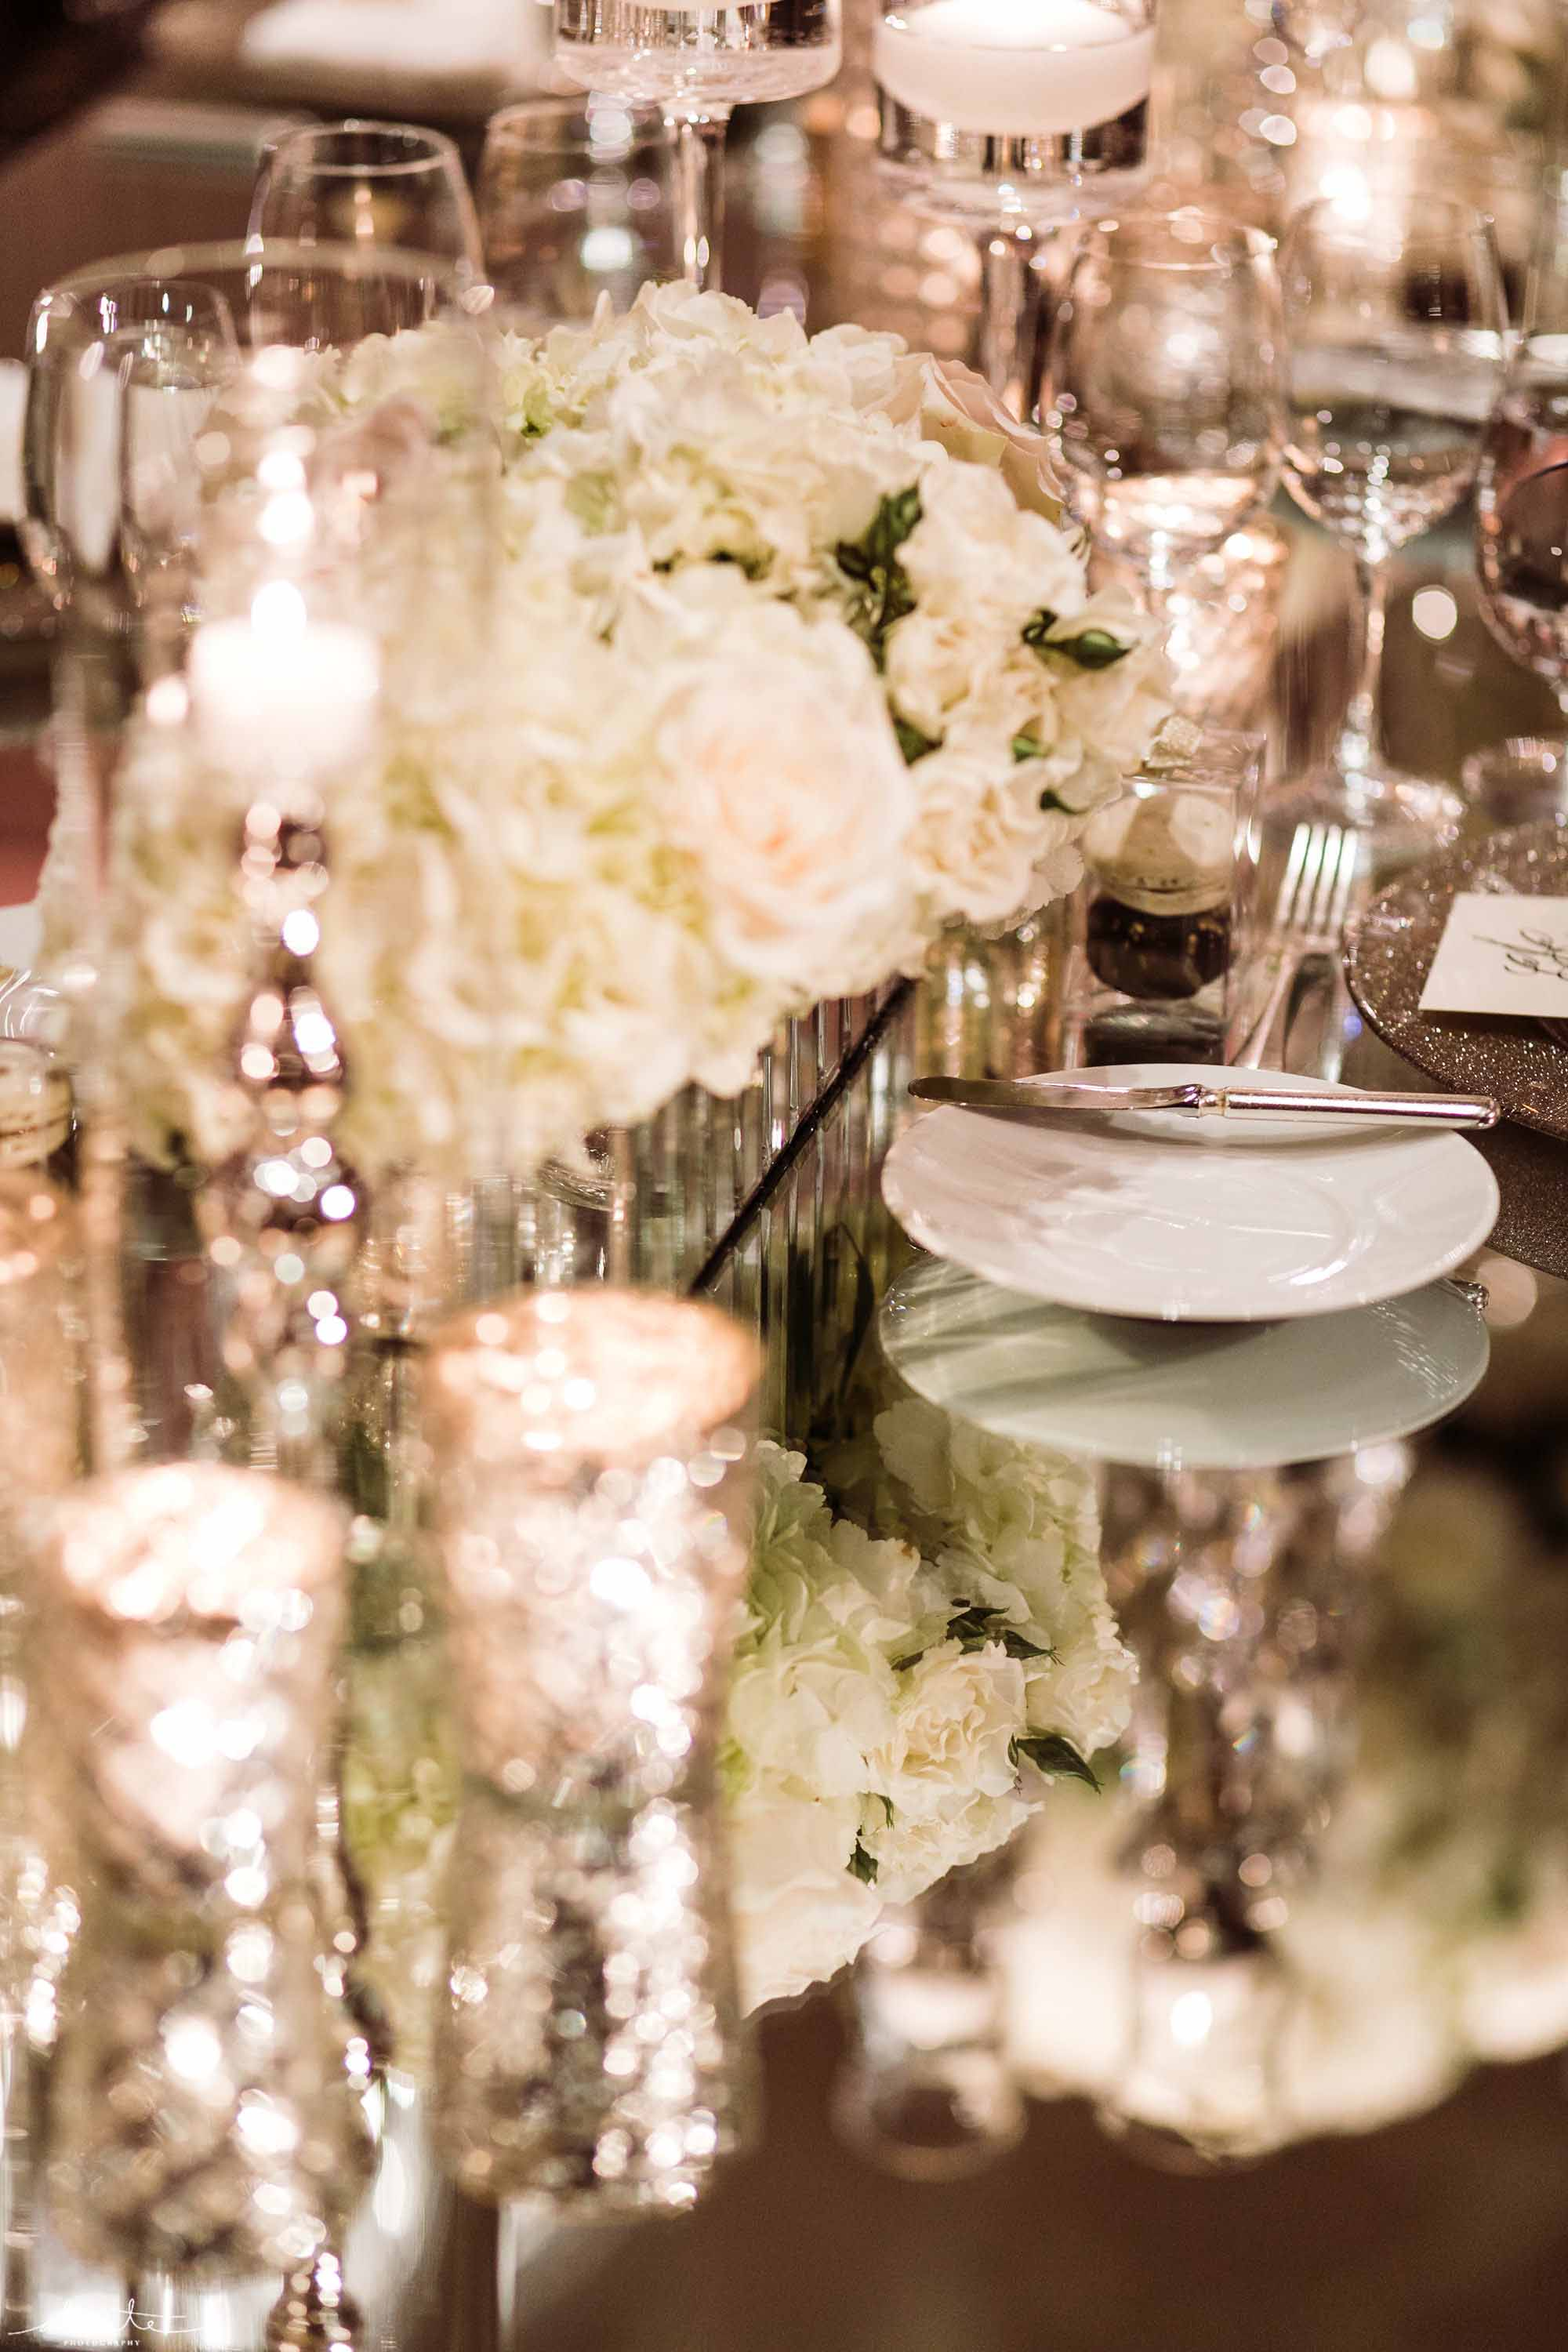 candles and white centerpieces in mirrored table - Luxury Winter Wedding at the Four Seasons by Flora Nova Design Seattle